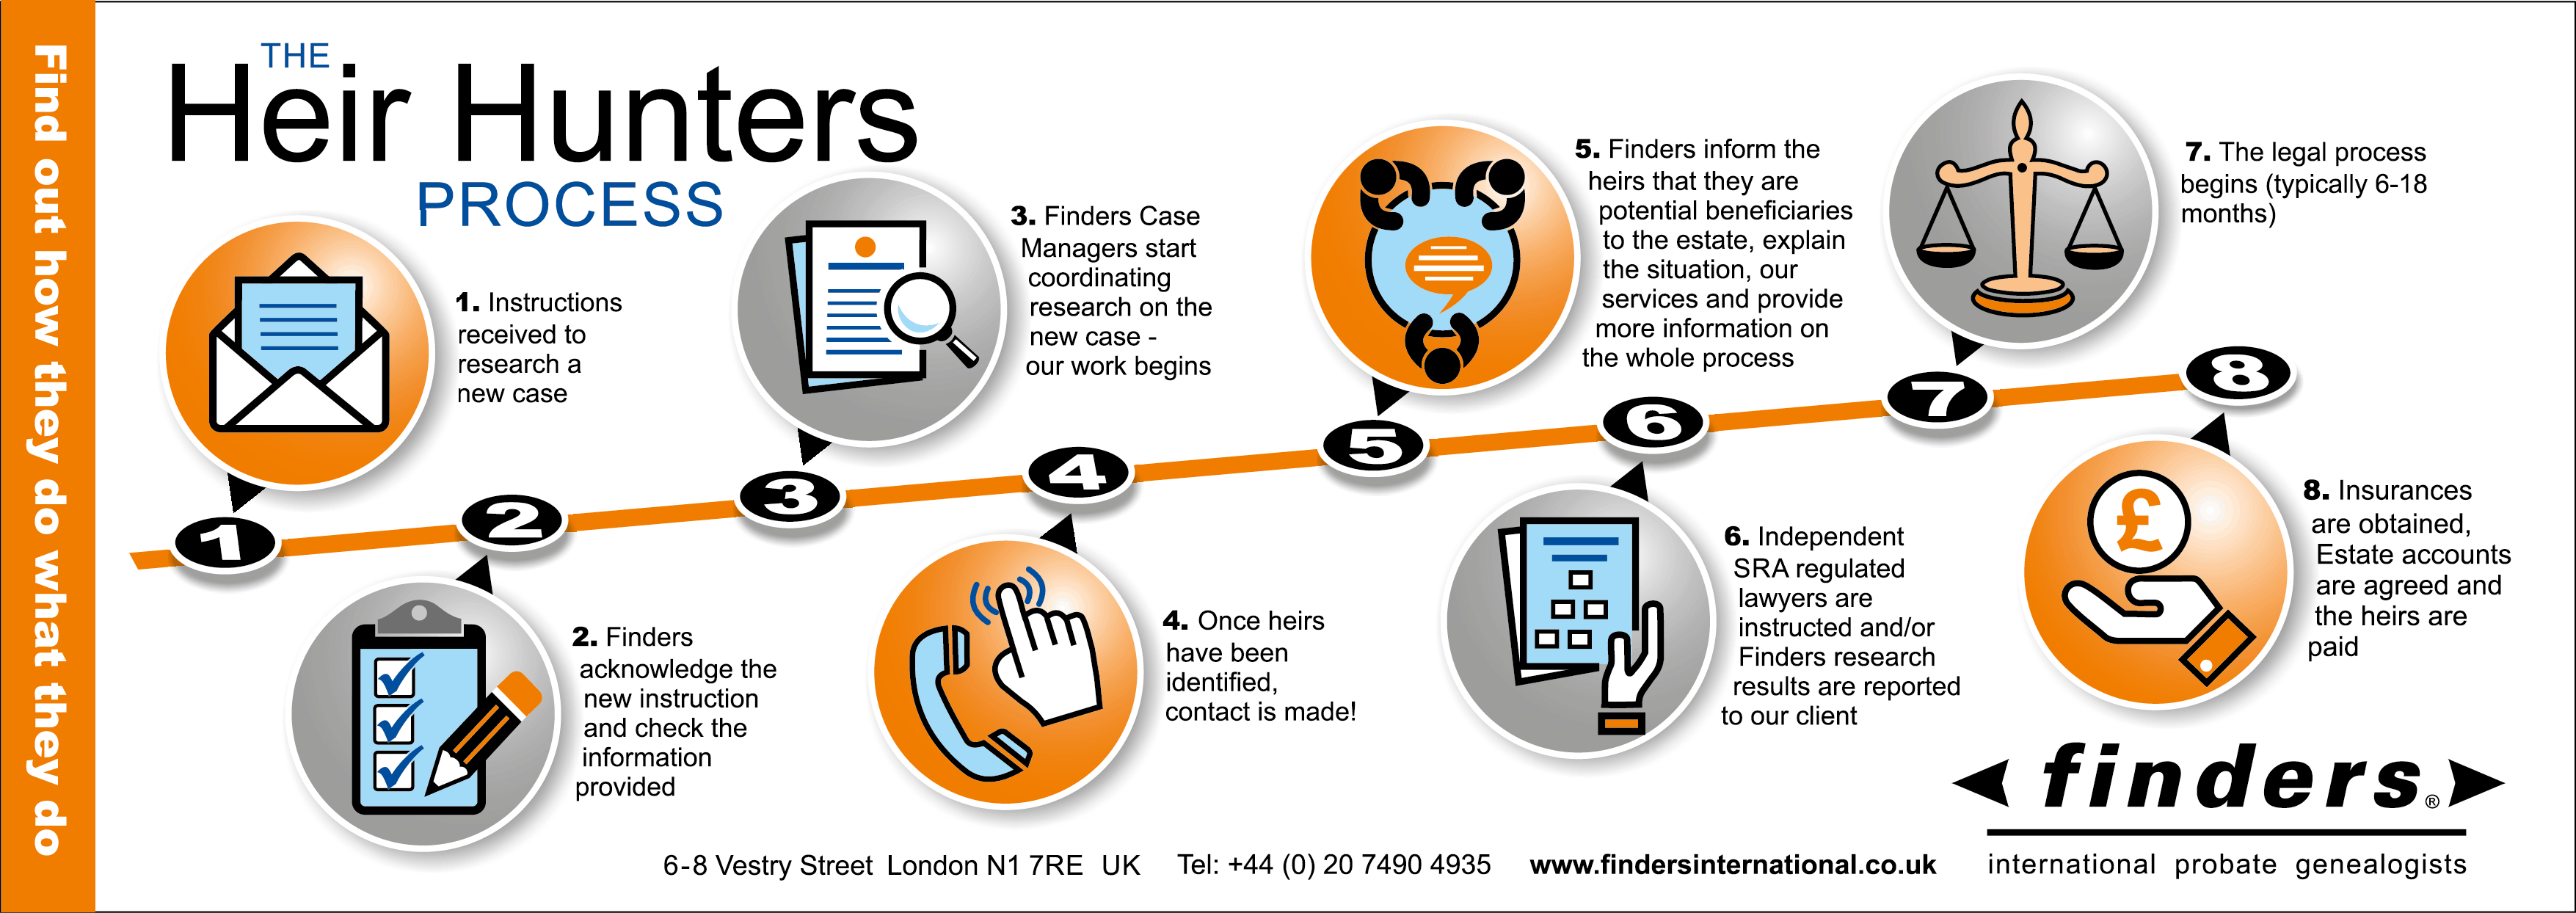 Finders- The Heir Hunters Process - infographic